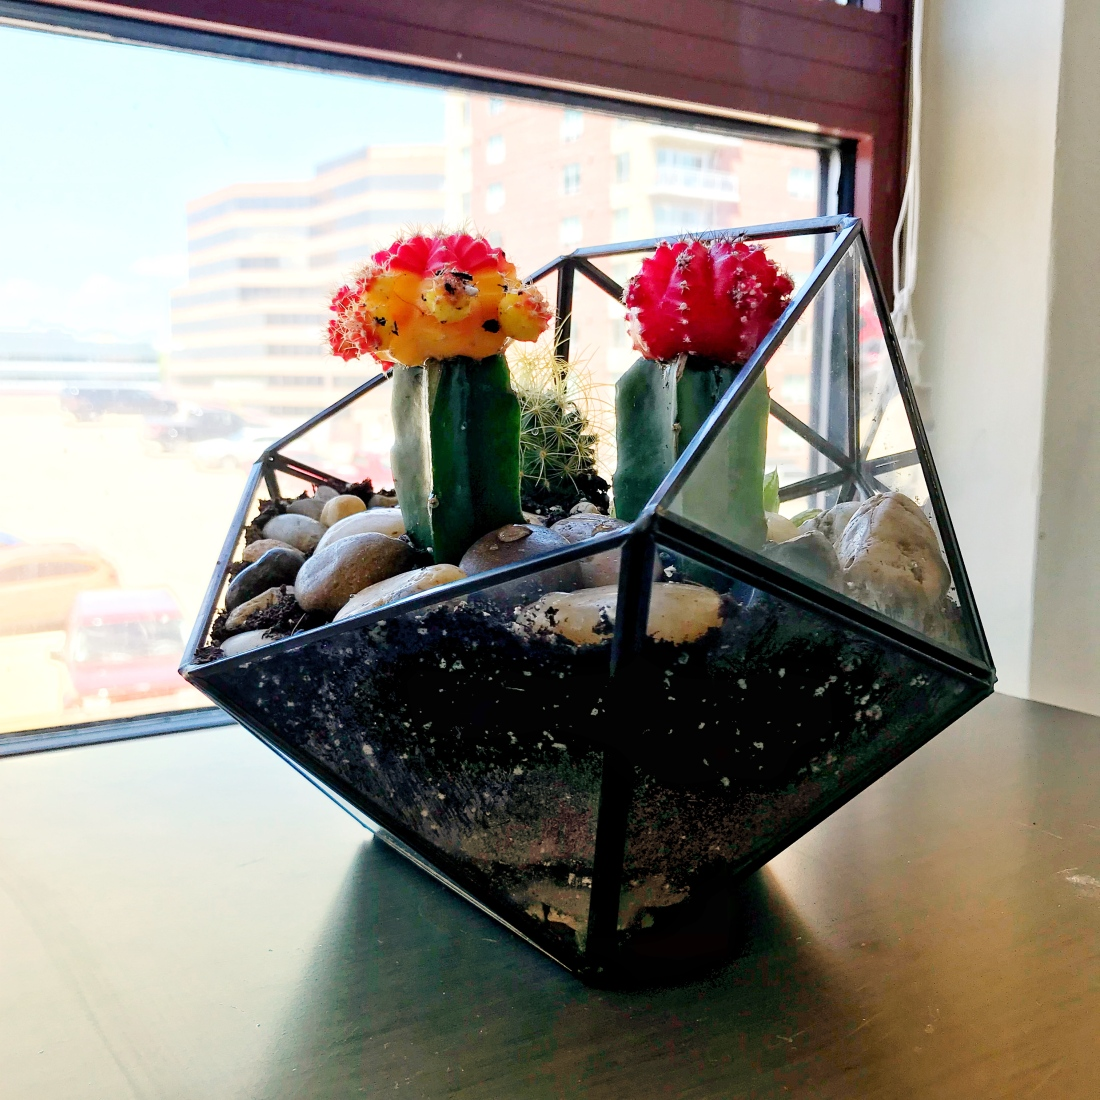 A glass planter with cacti planted in it.